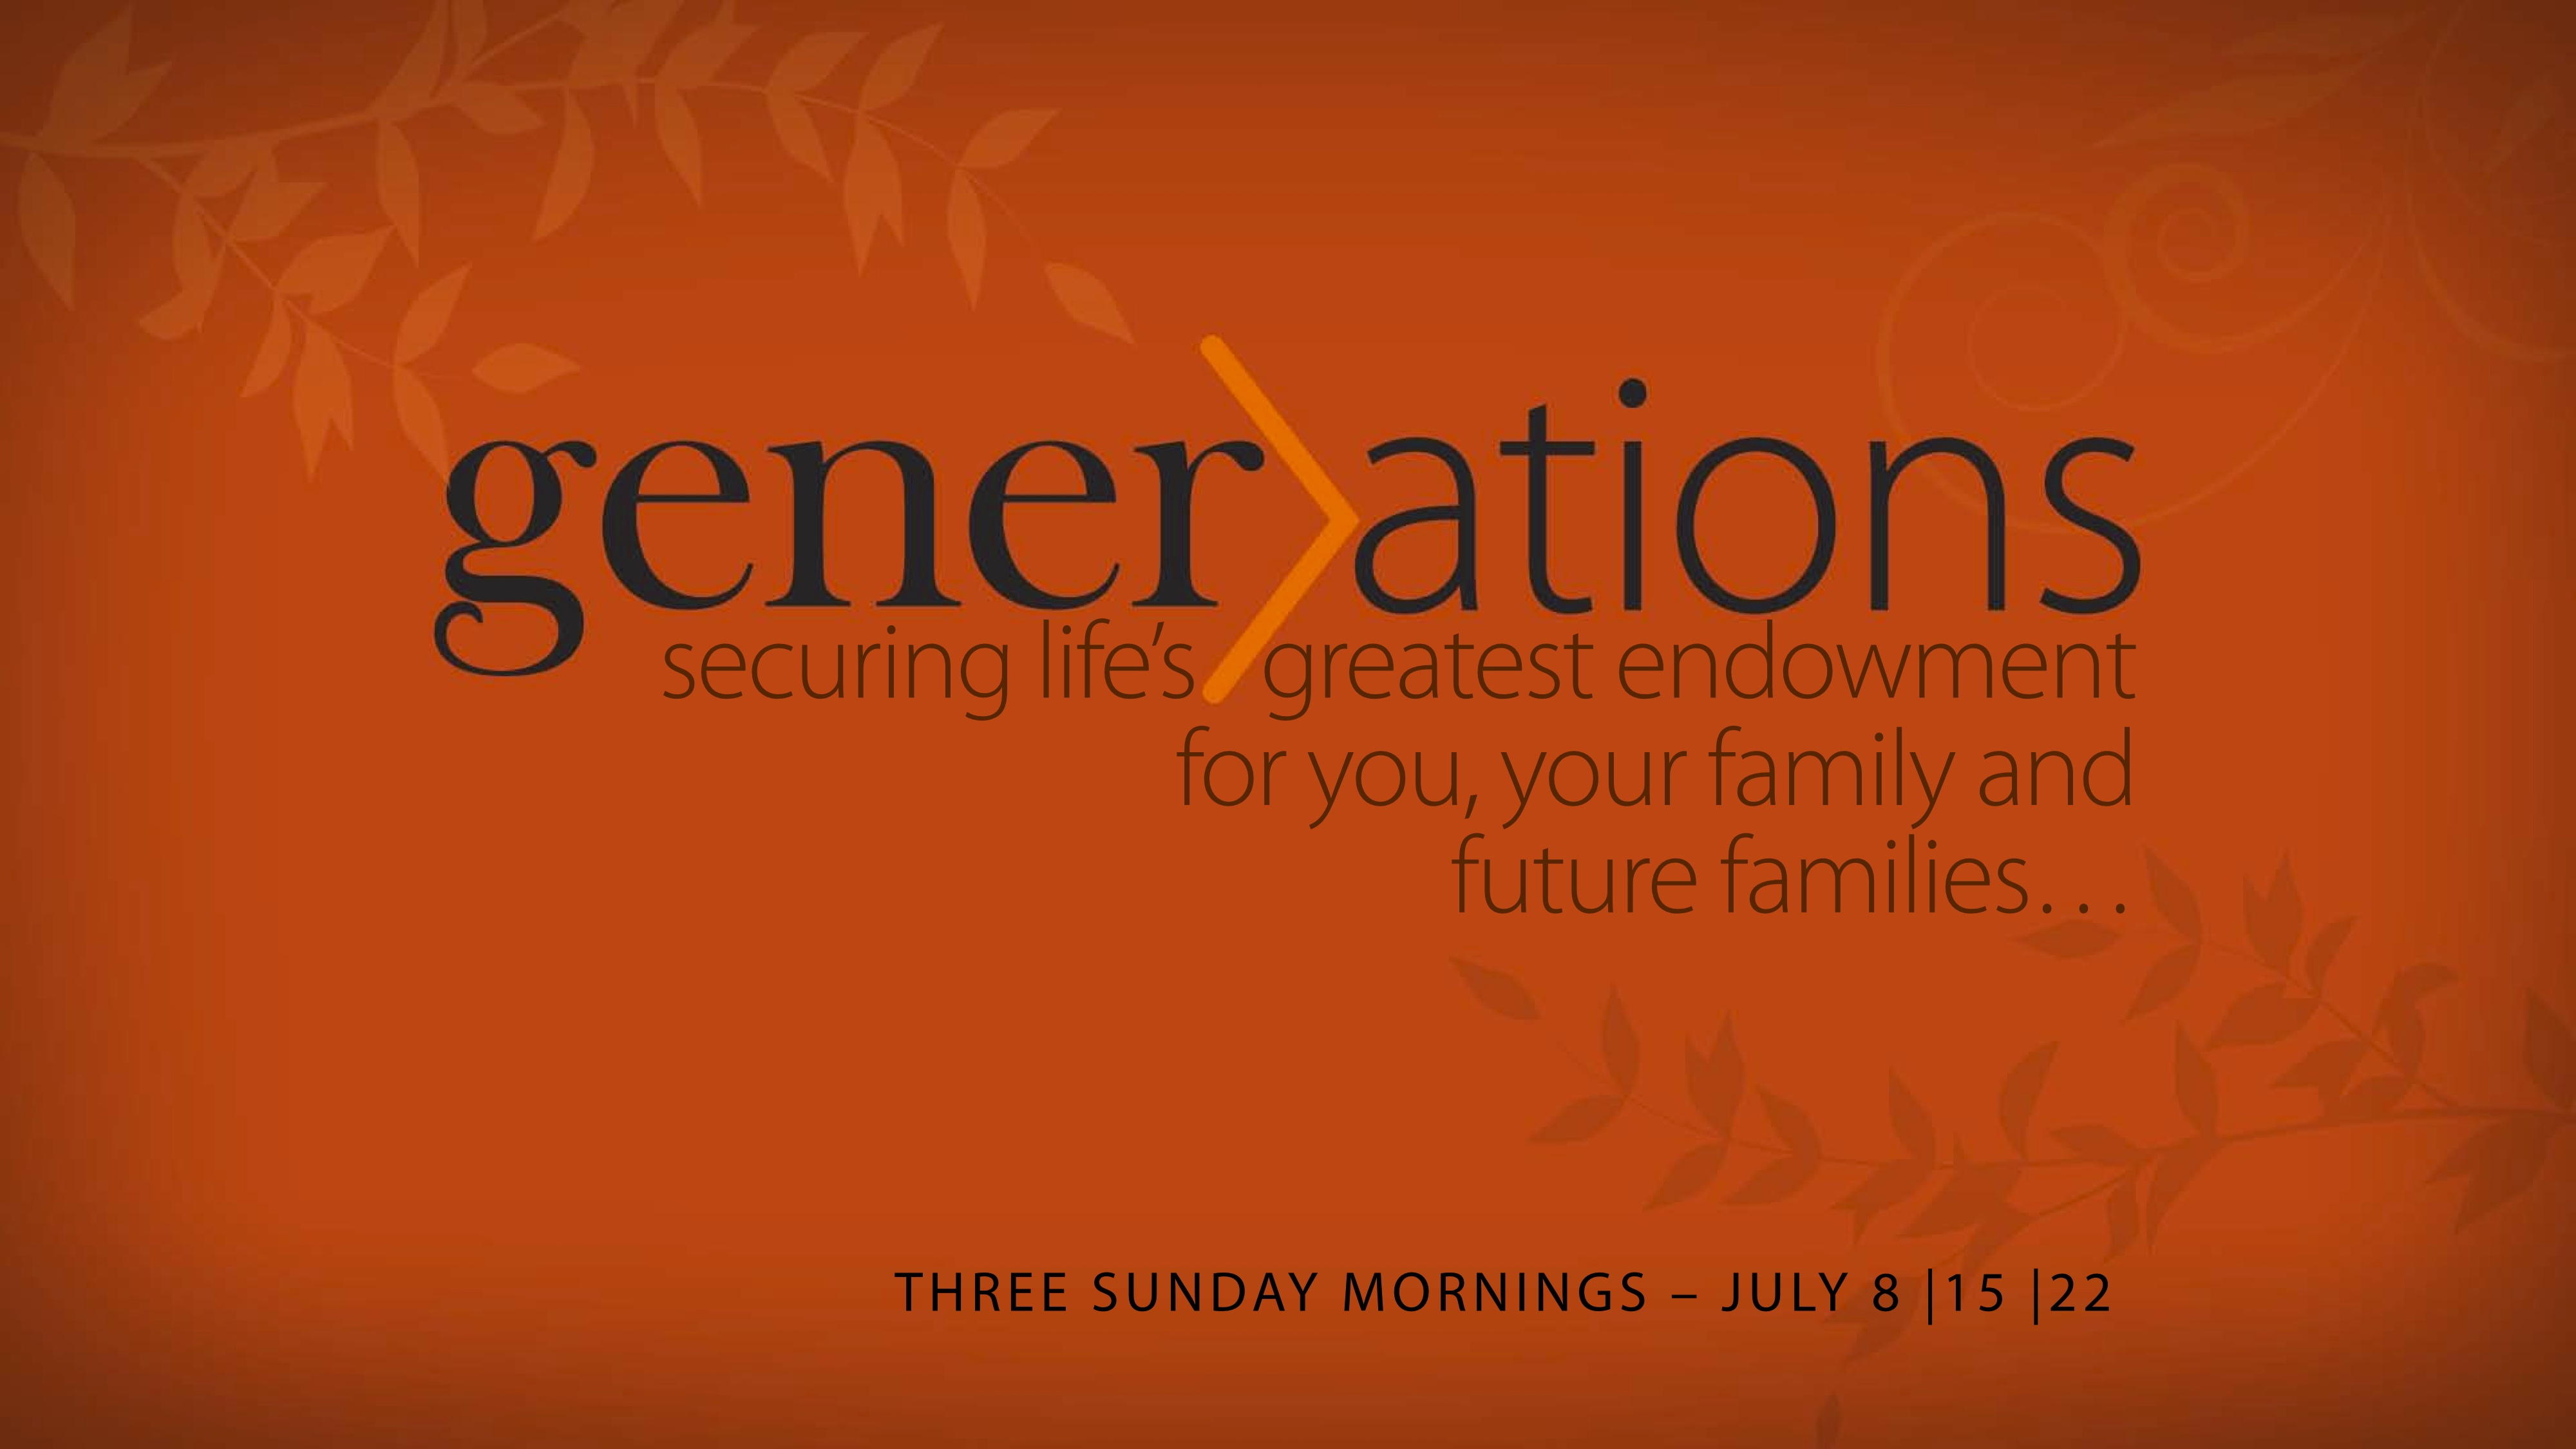 The Generation To Come Equipped For Life David Horner Raleigh